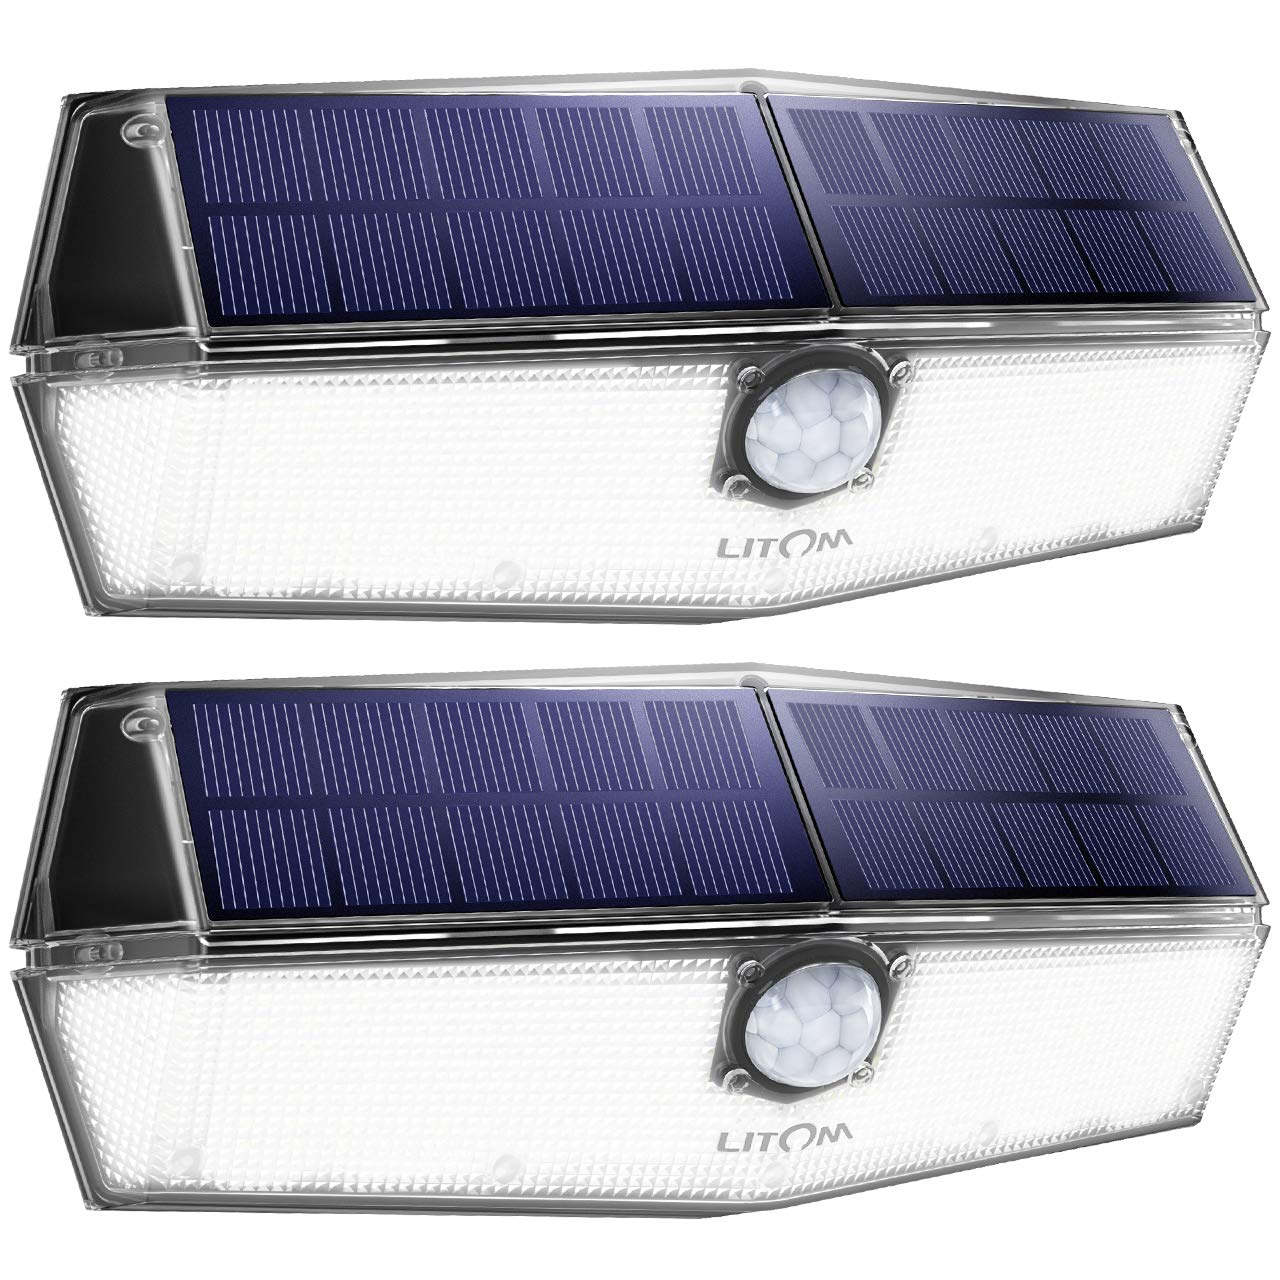 LITOM 200 LED Solar Lights Outdoor, 3 Optional Modes Wireless Motion Sensor Light with 270° Wide Angle, IP67 Waterproof, Easy-to-install Security Lights for Front Door, Yard, Garage, Deck, Porch-2Pack